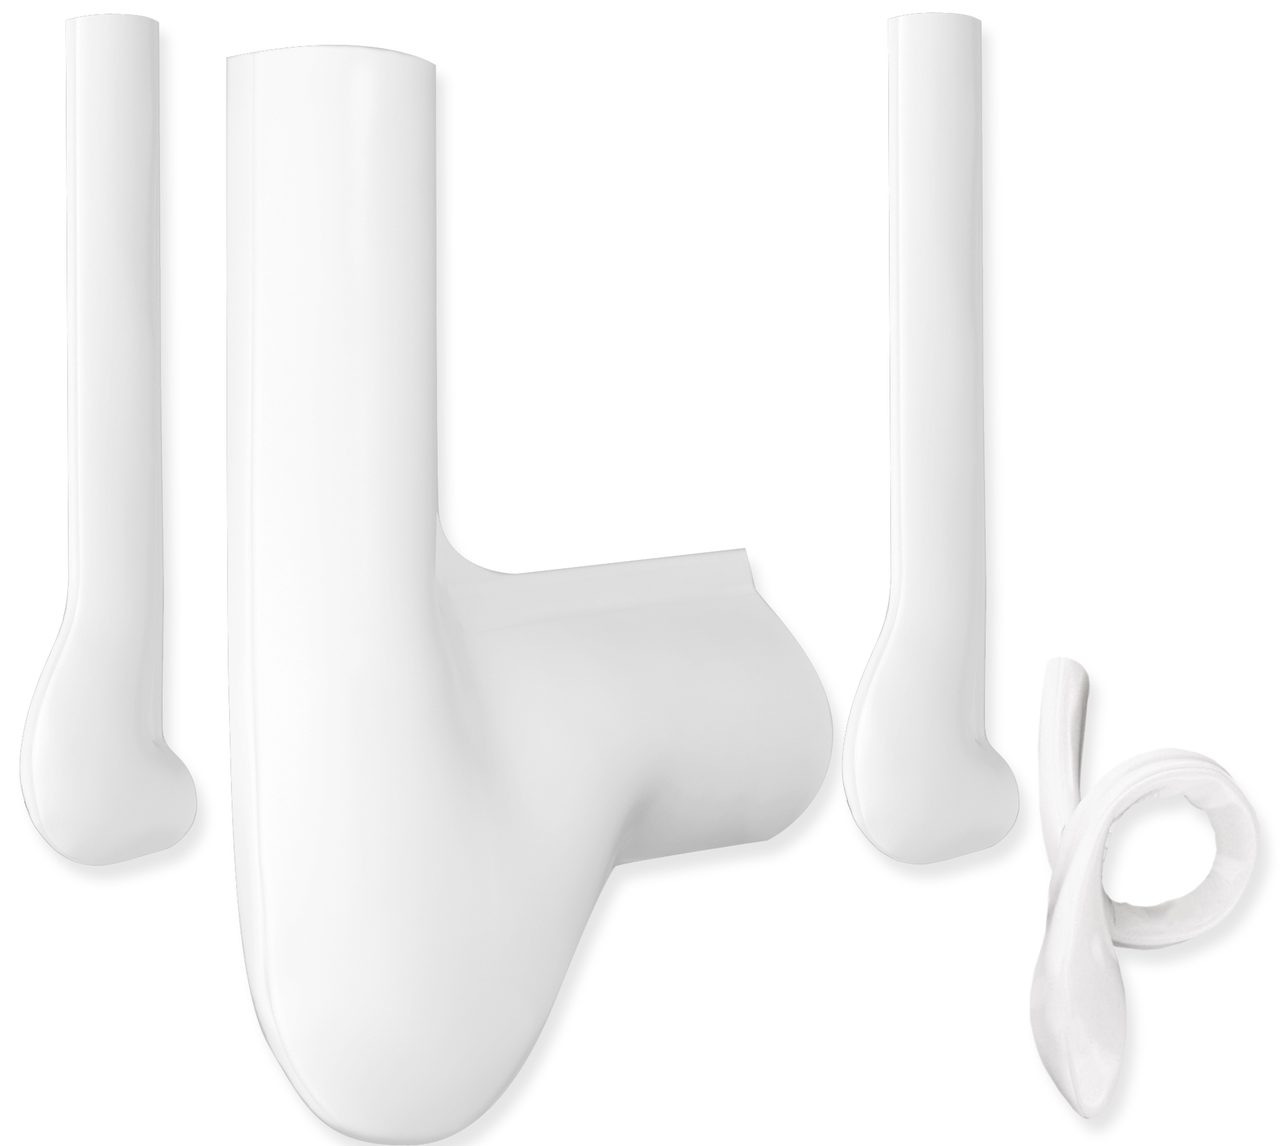 Pme 0921 Products Plumber REX